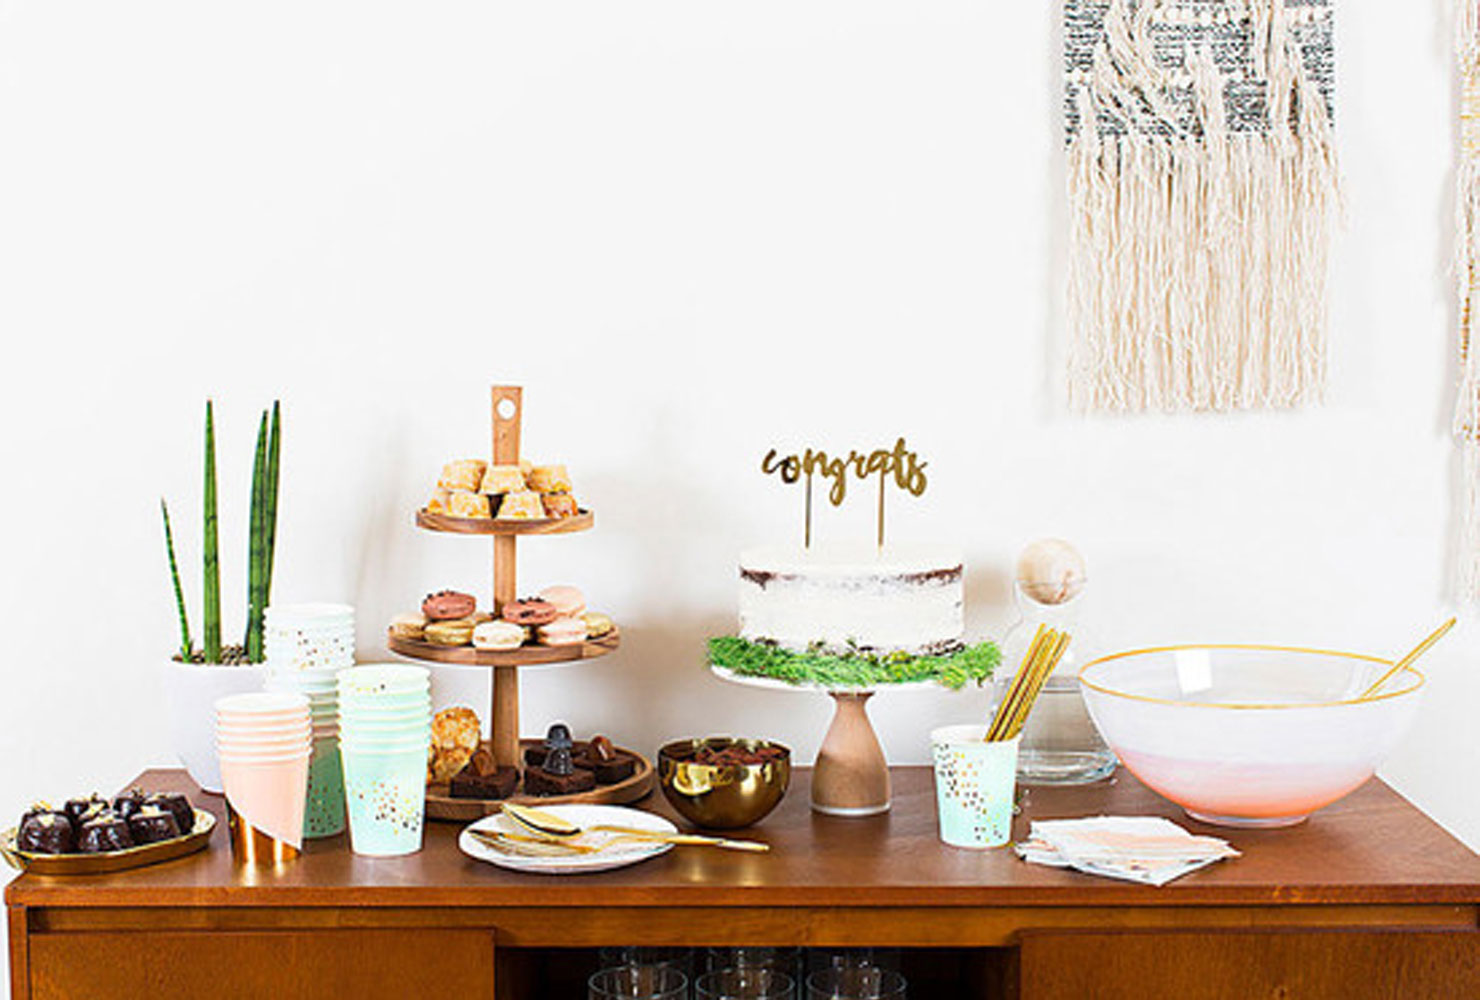 Wooden tablescape with green and gold accents